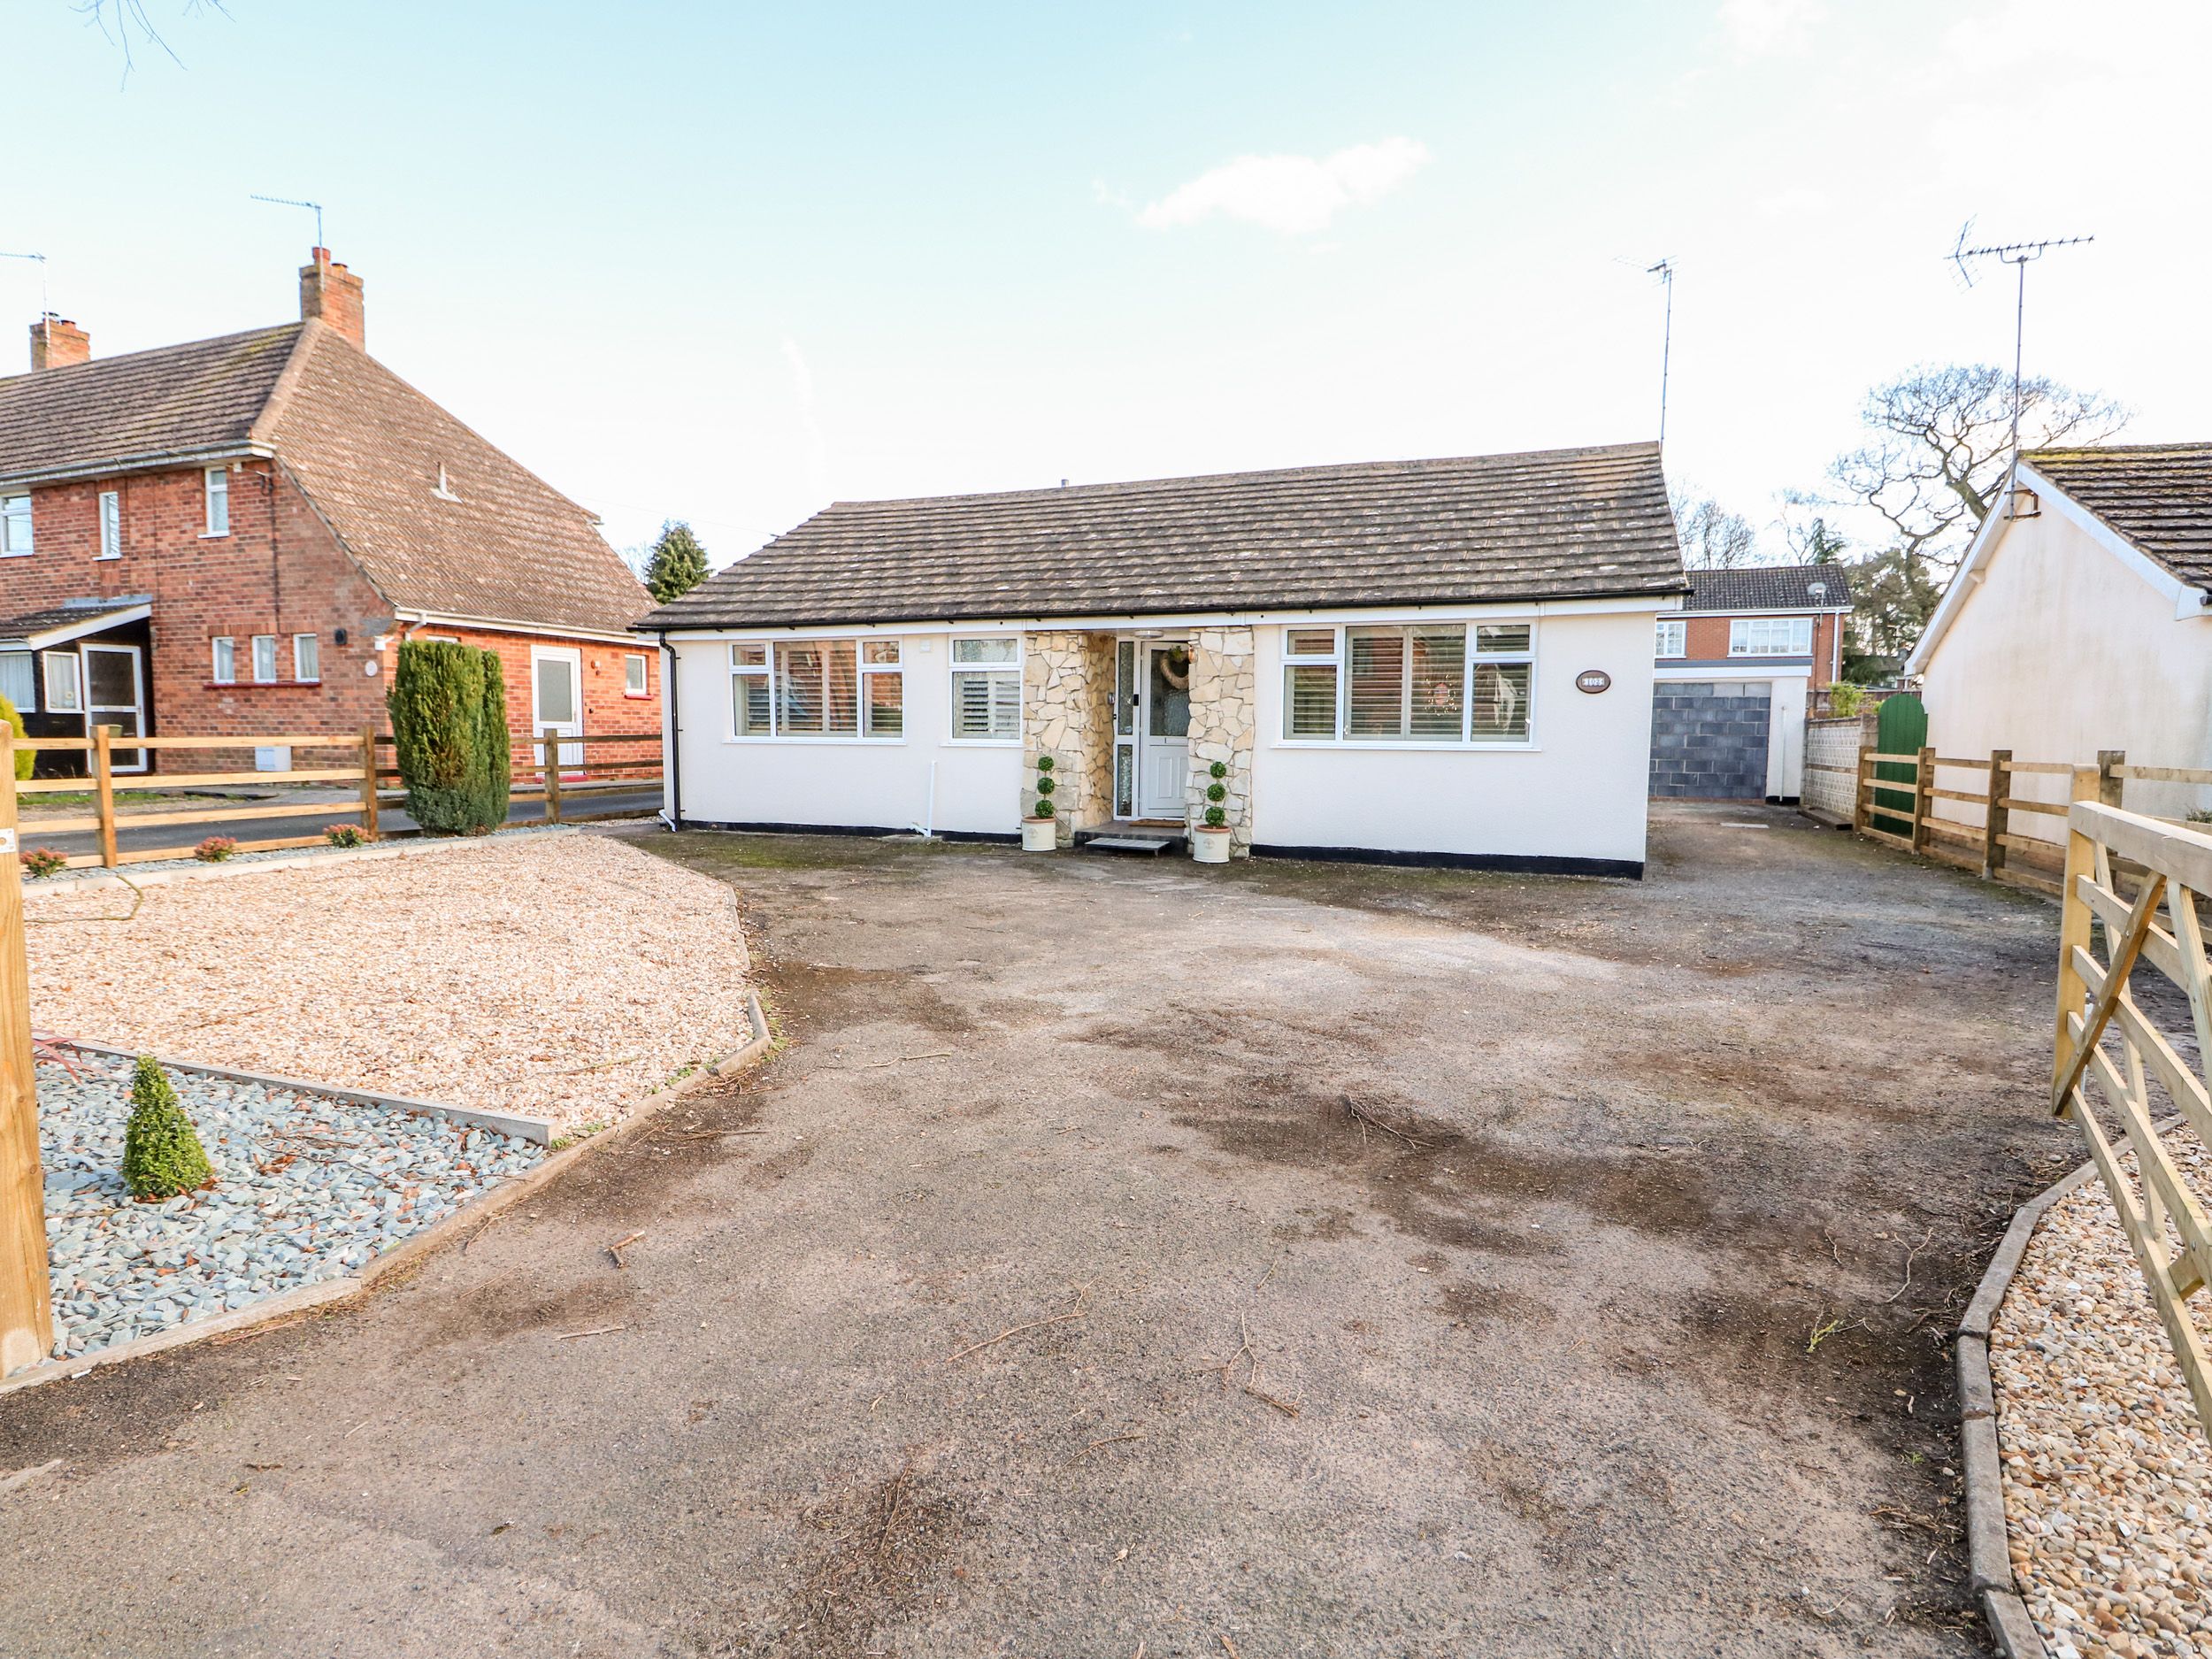 3 bedroom Cottage for rent in Woodhall Spa